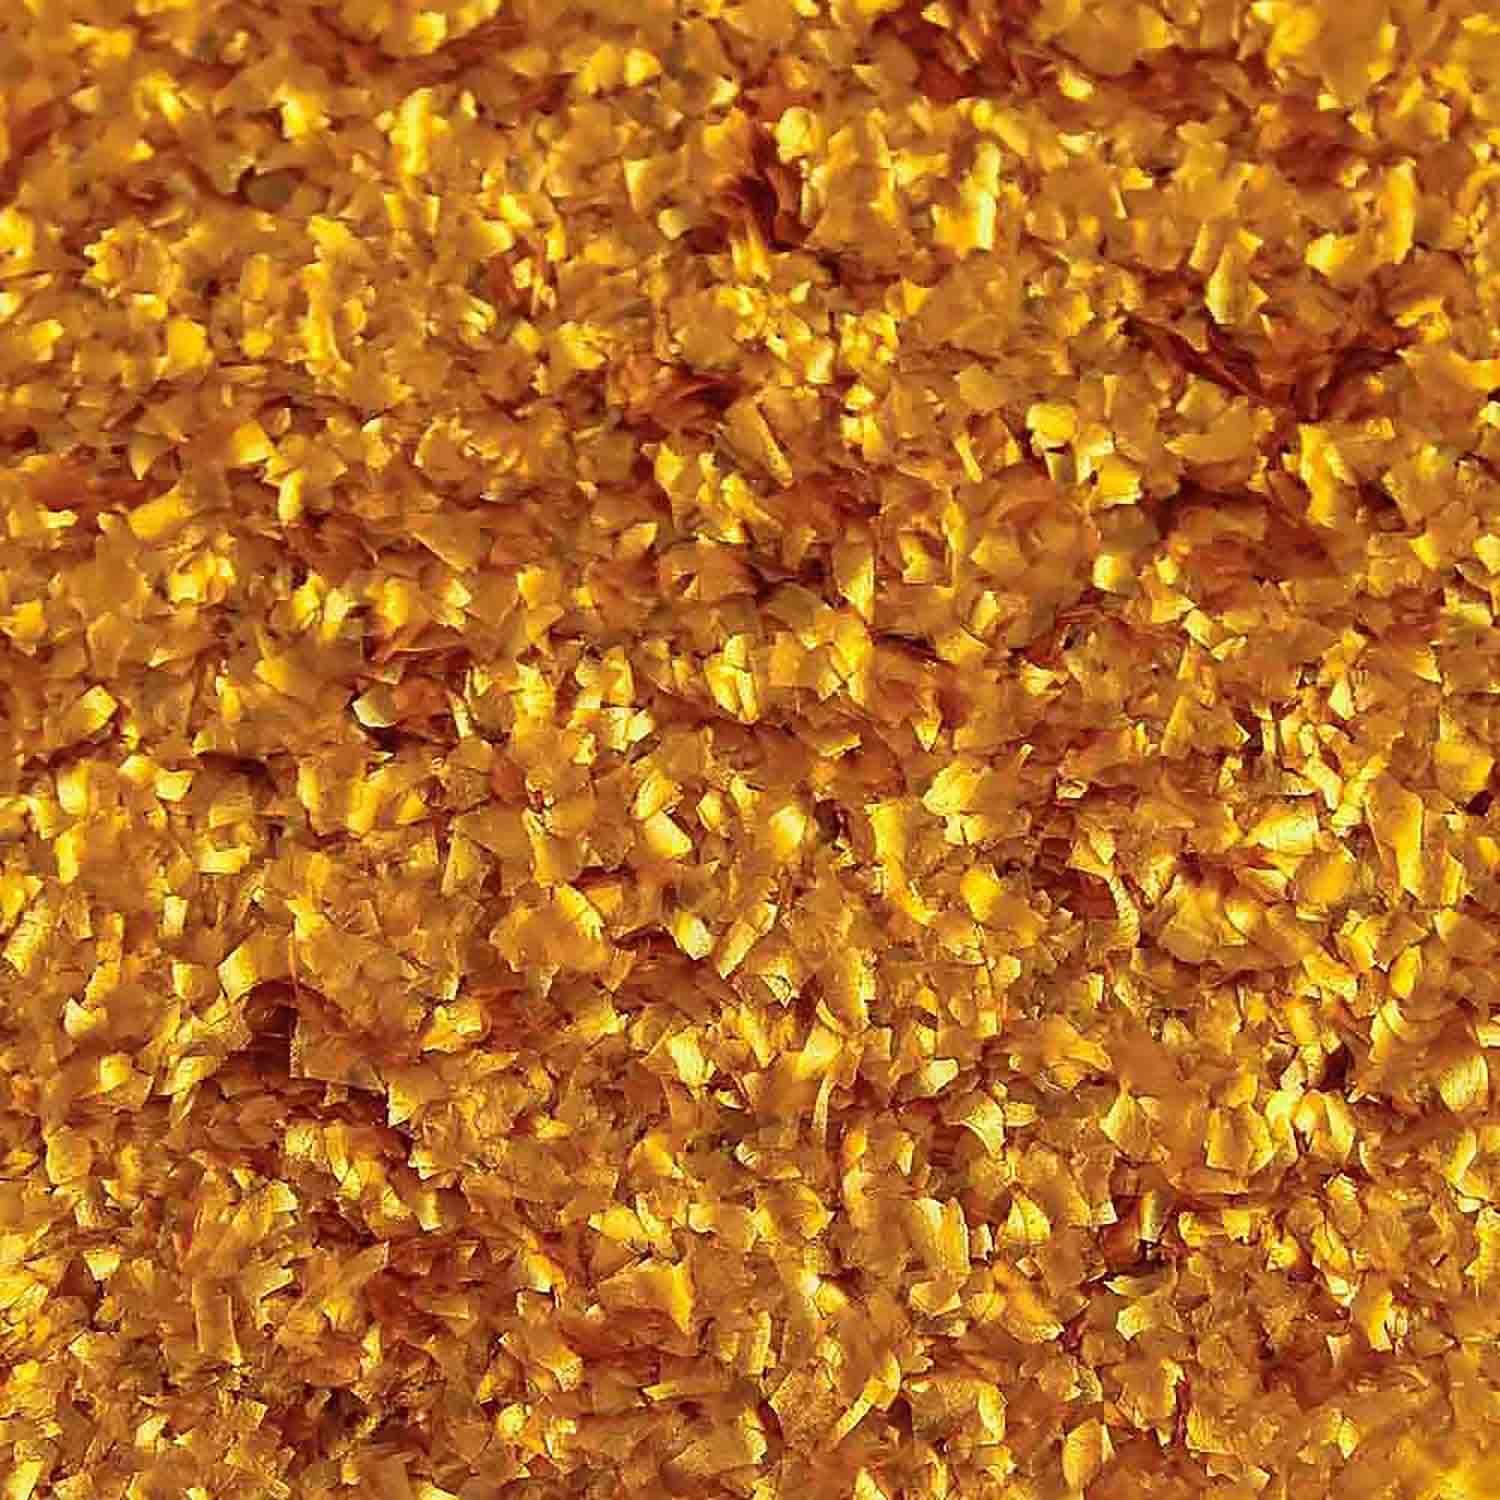 Metallic Gold Edible Glitter Flakes